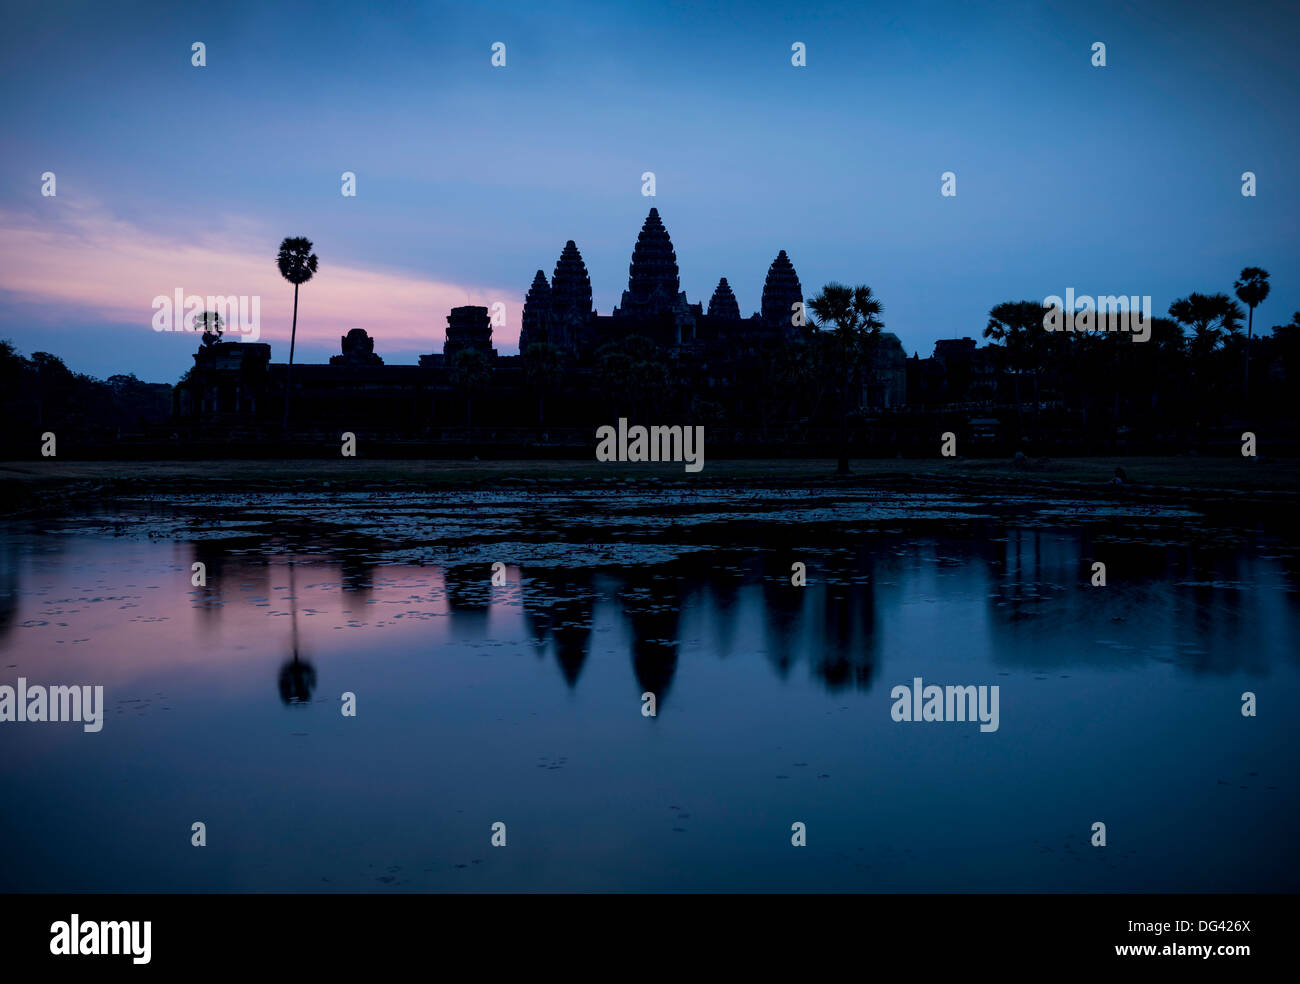 Sunrise over Angkor Wat, Angkor, UNESCO World Heritage Site, Siem Reap, Cambodia, Indochina, Southeast Asia, Asia - Stock Image